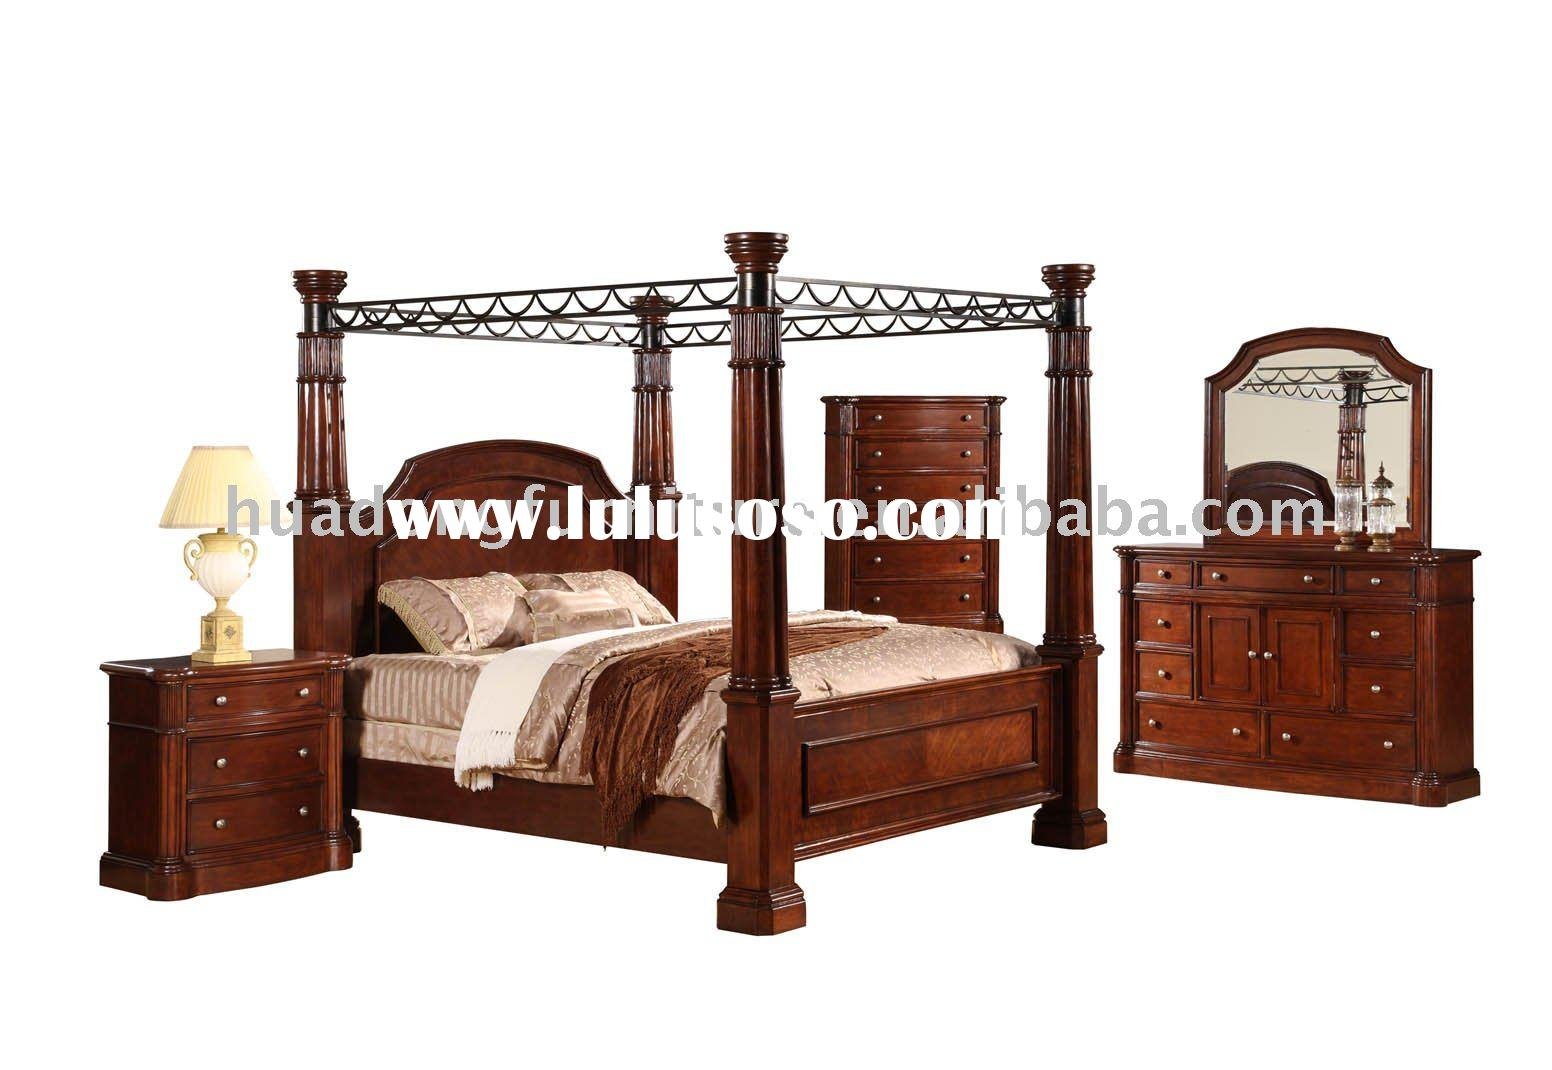 furniture solid wood bedroom set, furniture solid wood bedroom set